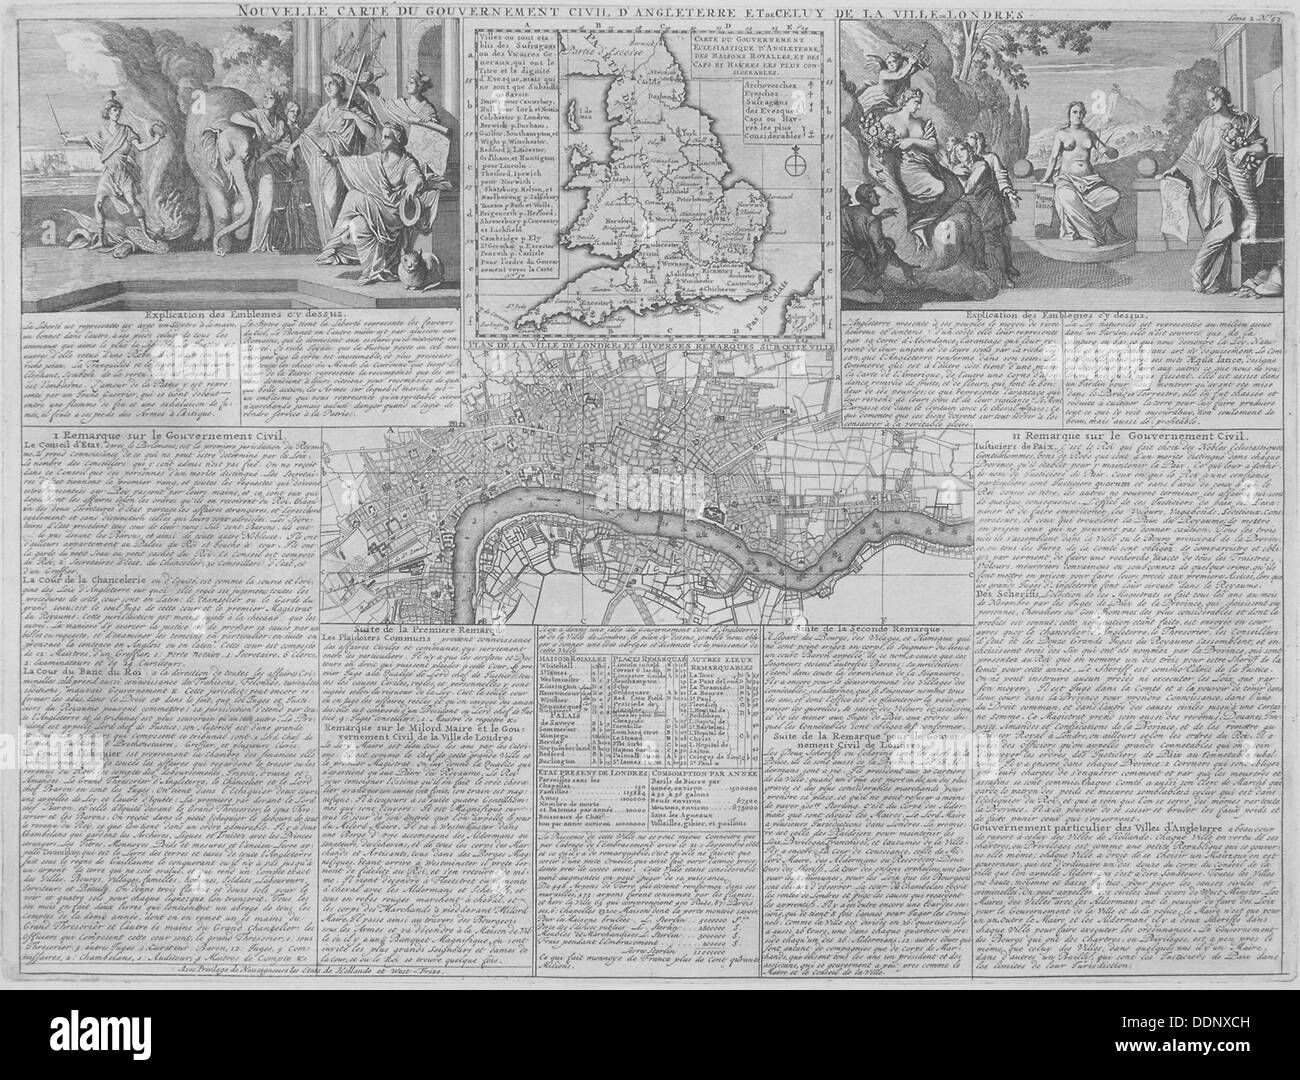 Maps of England, Wales and London, 1718. Artist: Anon - Stock Image